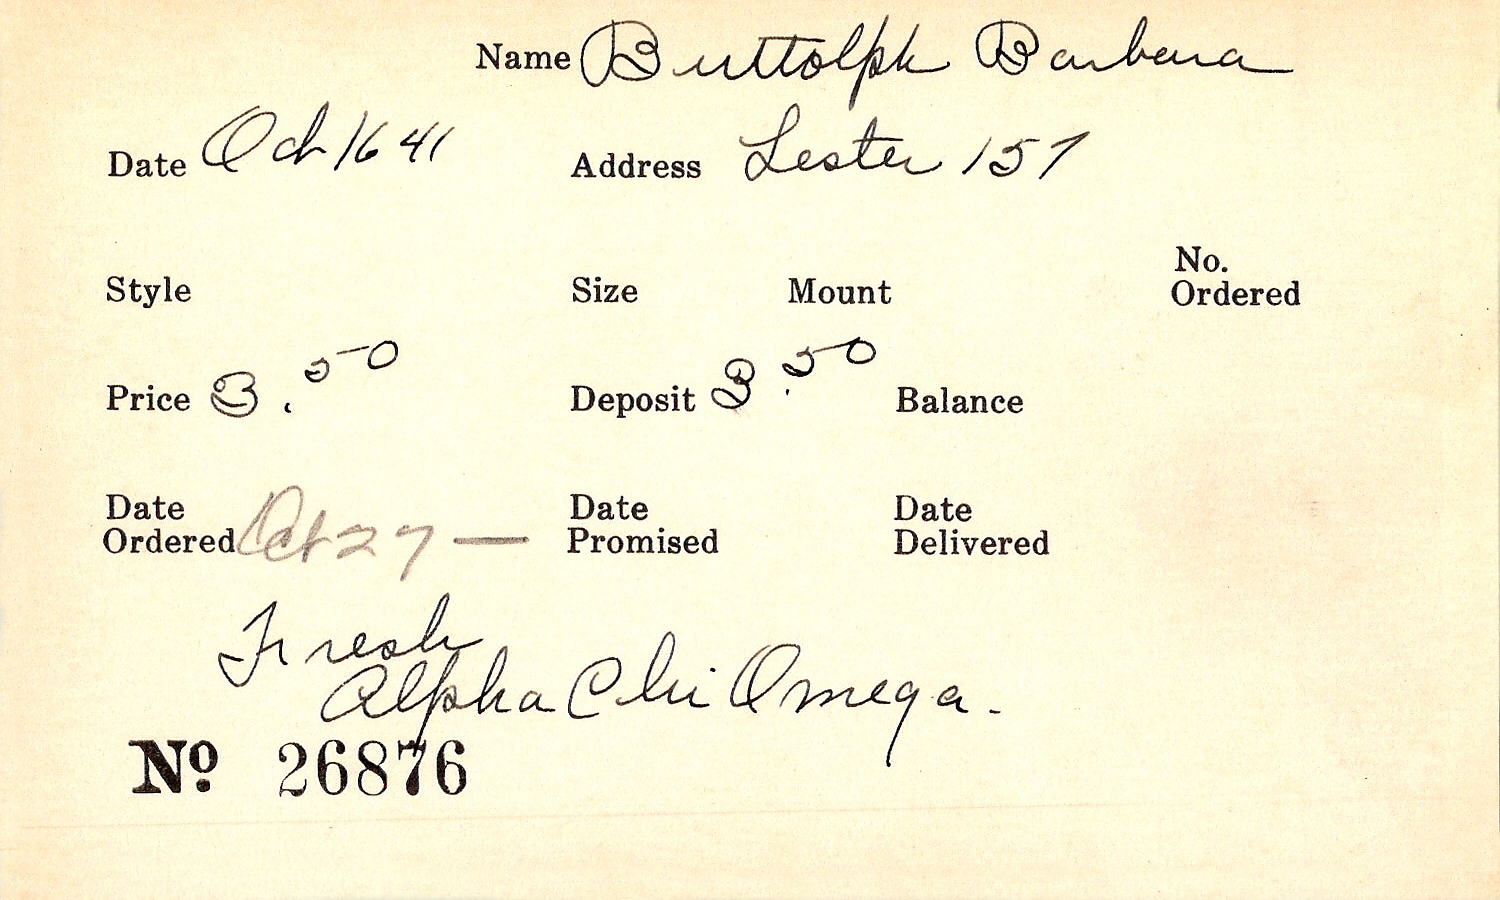 Index card for Barbara Buttolph